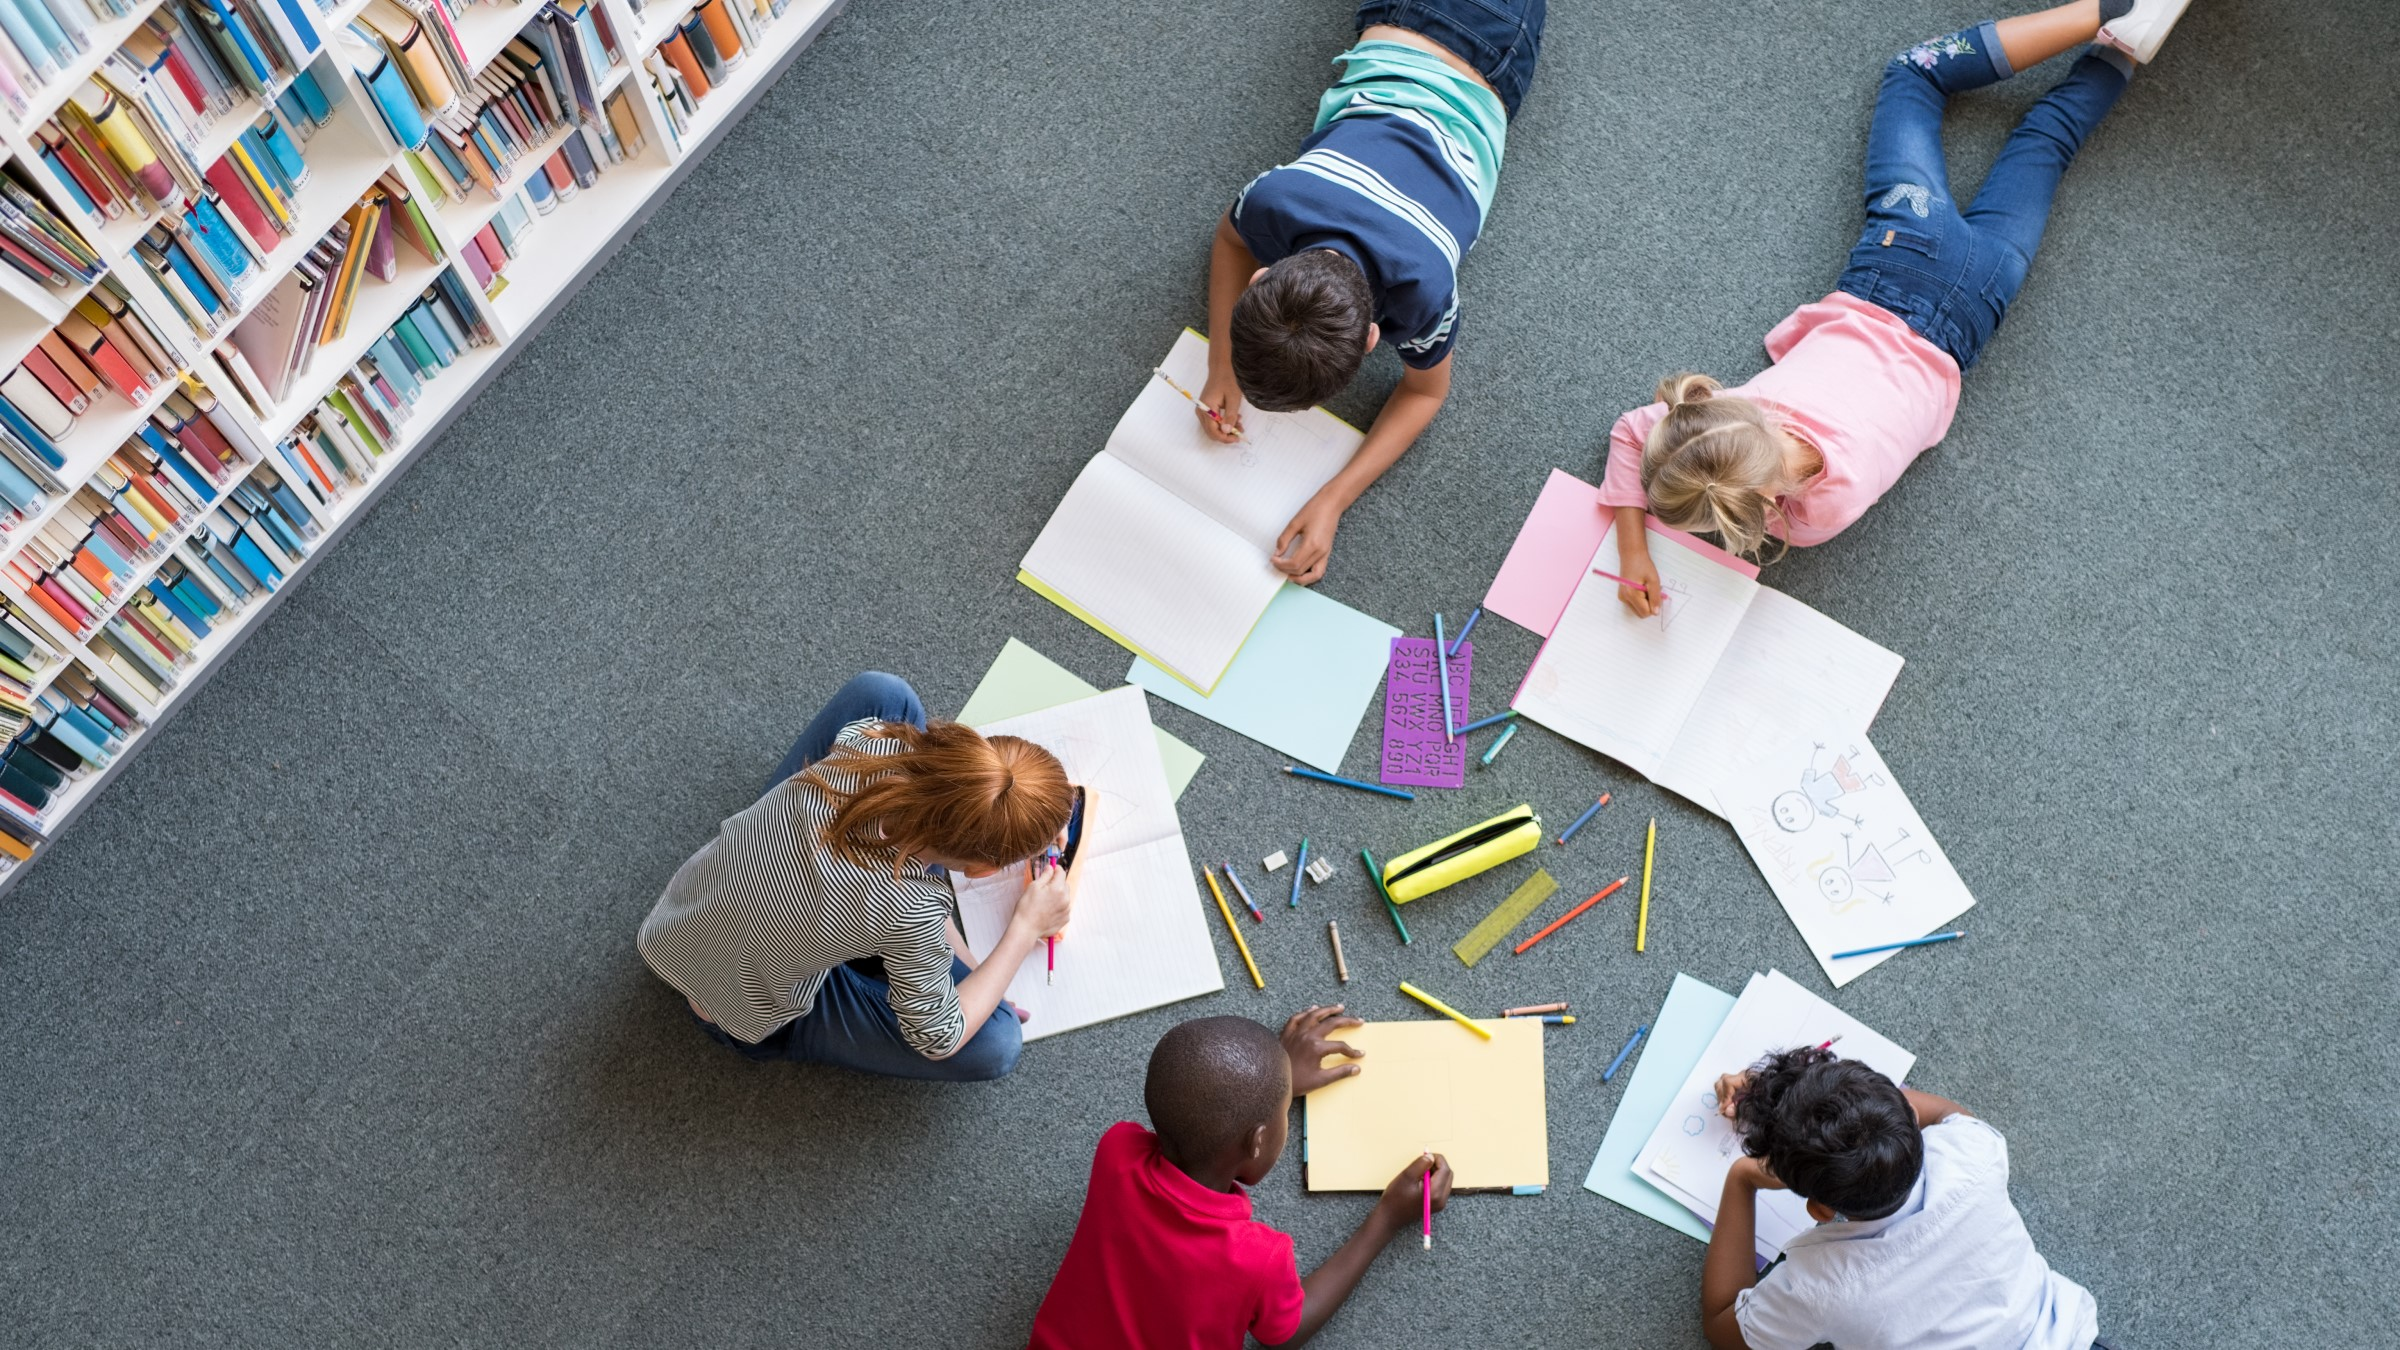 Children drawing at library